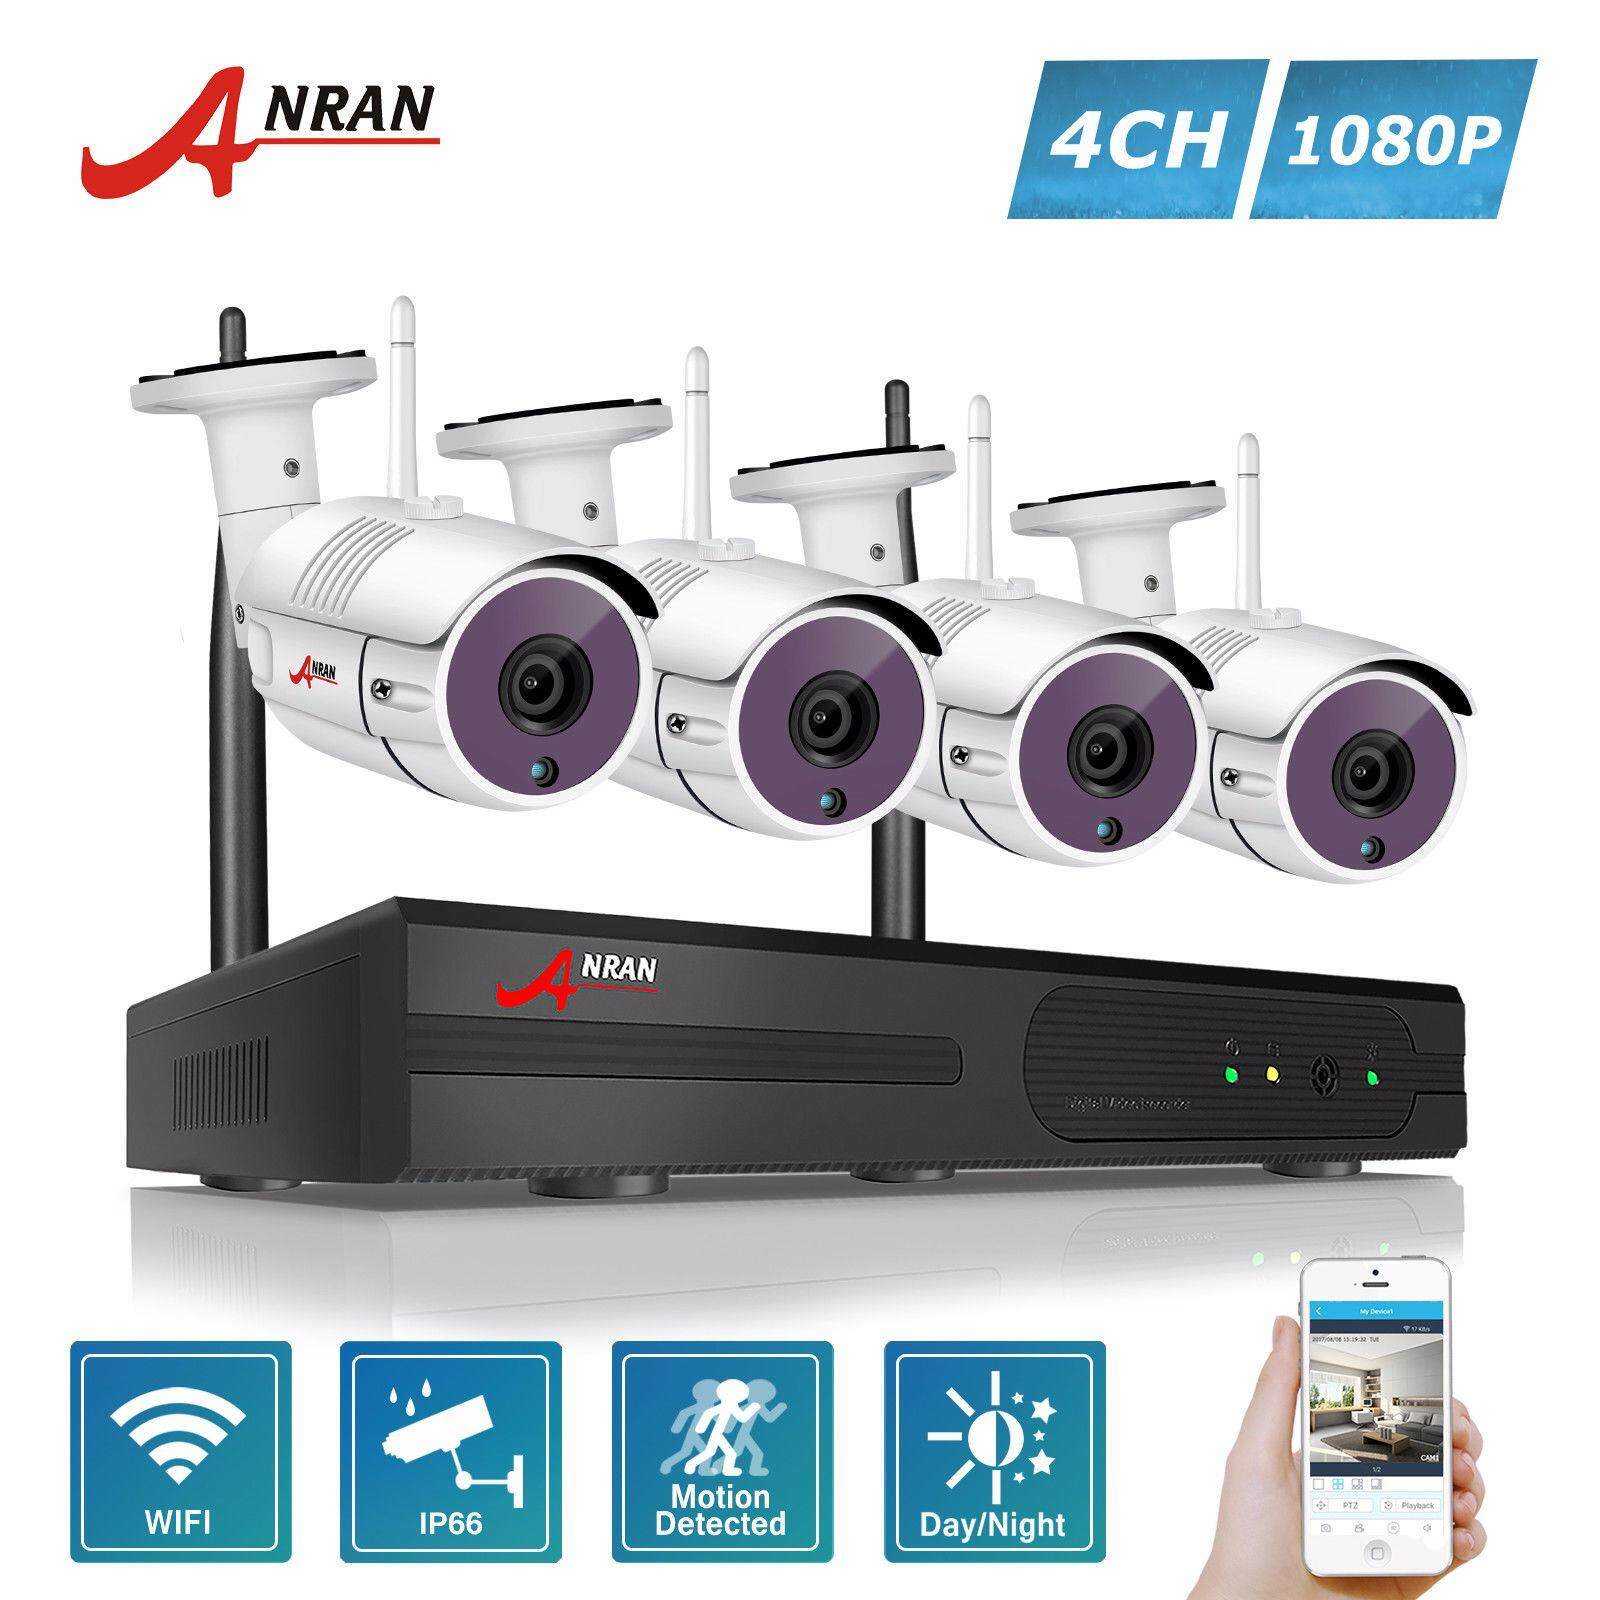 ราคา Anran 4Ch Wireless Nvr Security Cctv System P2P 1080P Hd Outdoor Vandalproof Wfi Ip Camera